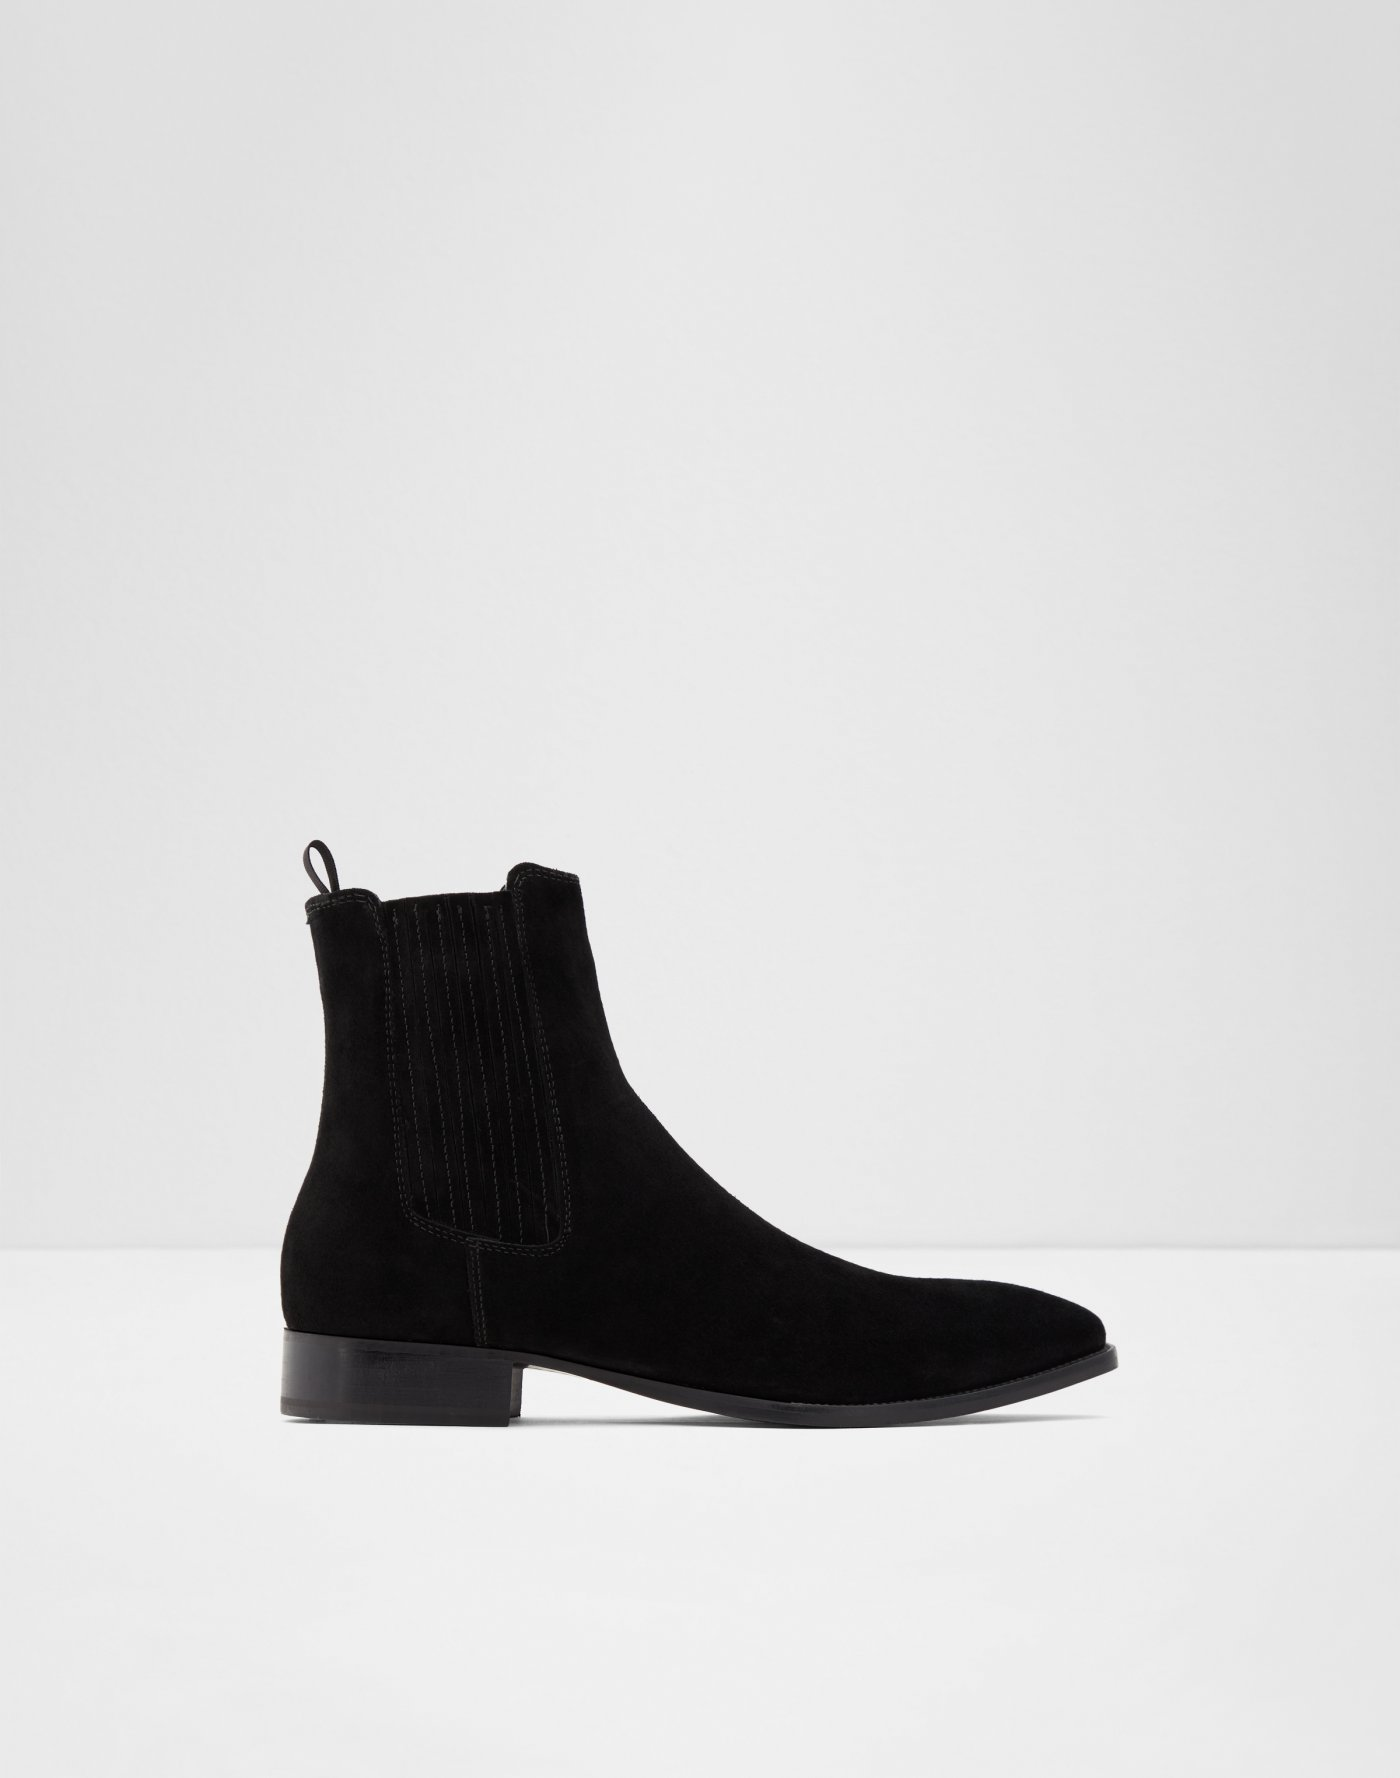 d3d2424dff0 Men's Boots | Dress & Chelsea Boots For Men | ALDO US | Aldoshoes.com US